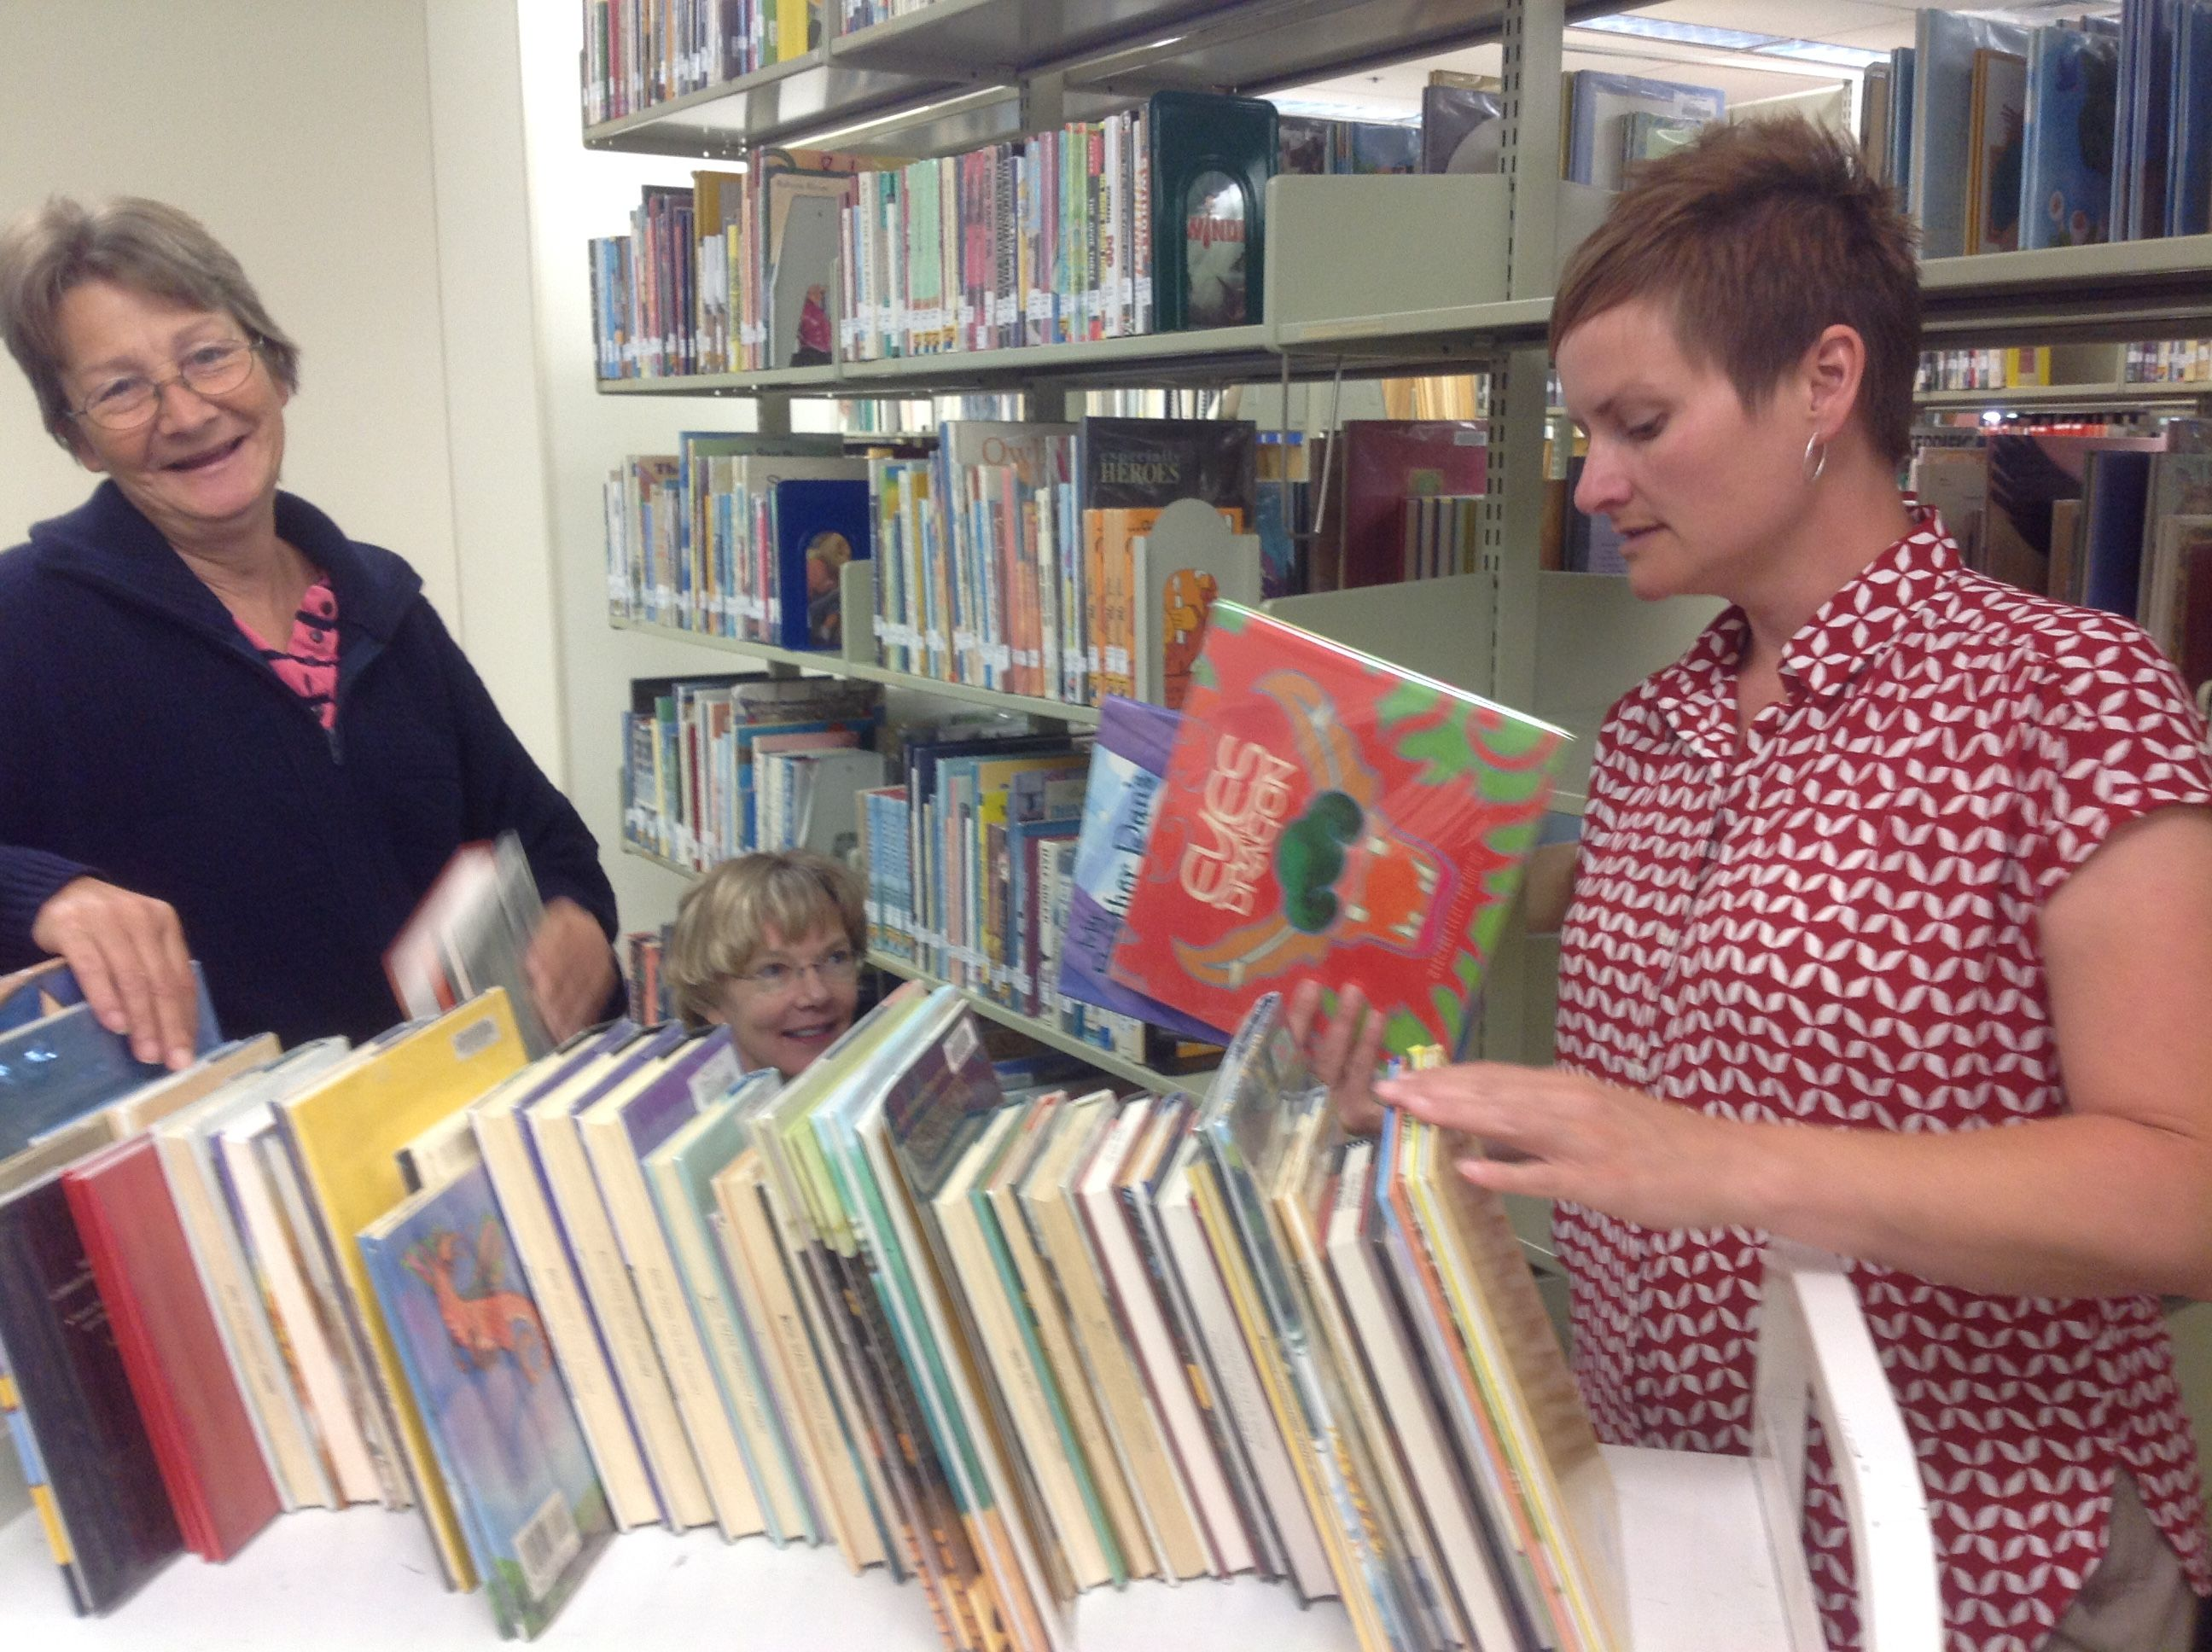 Shelly, Mary, and Margie helped get the Curriculum Resource Center shifted